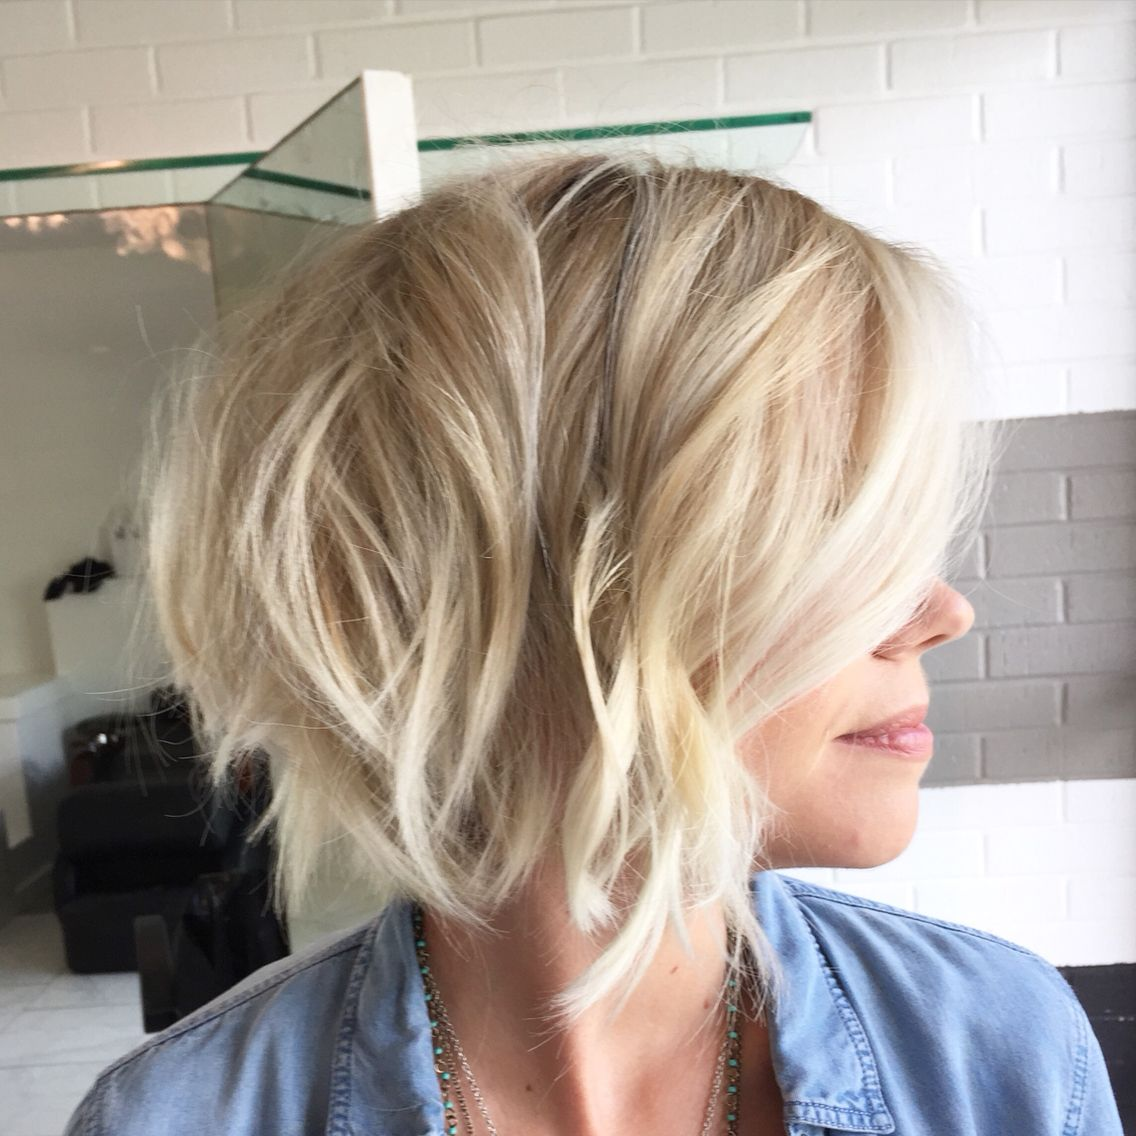 Short hair cut textured bob blonde hair low maintenance hair color